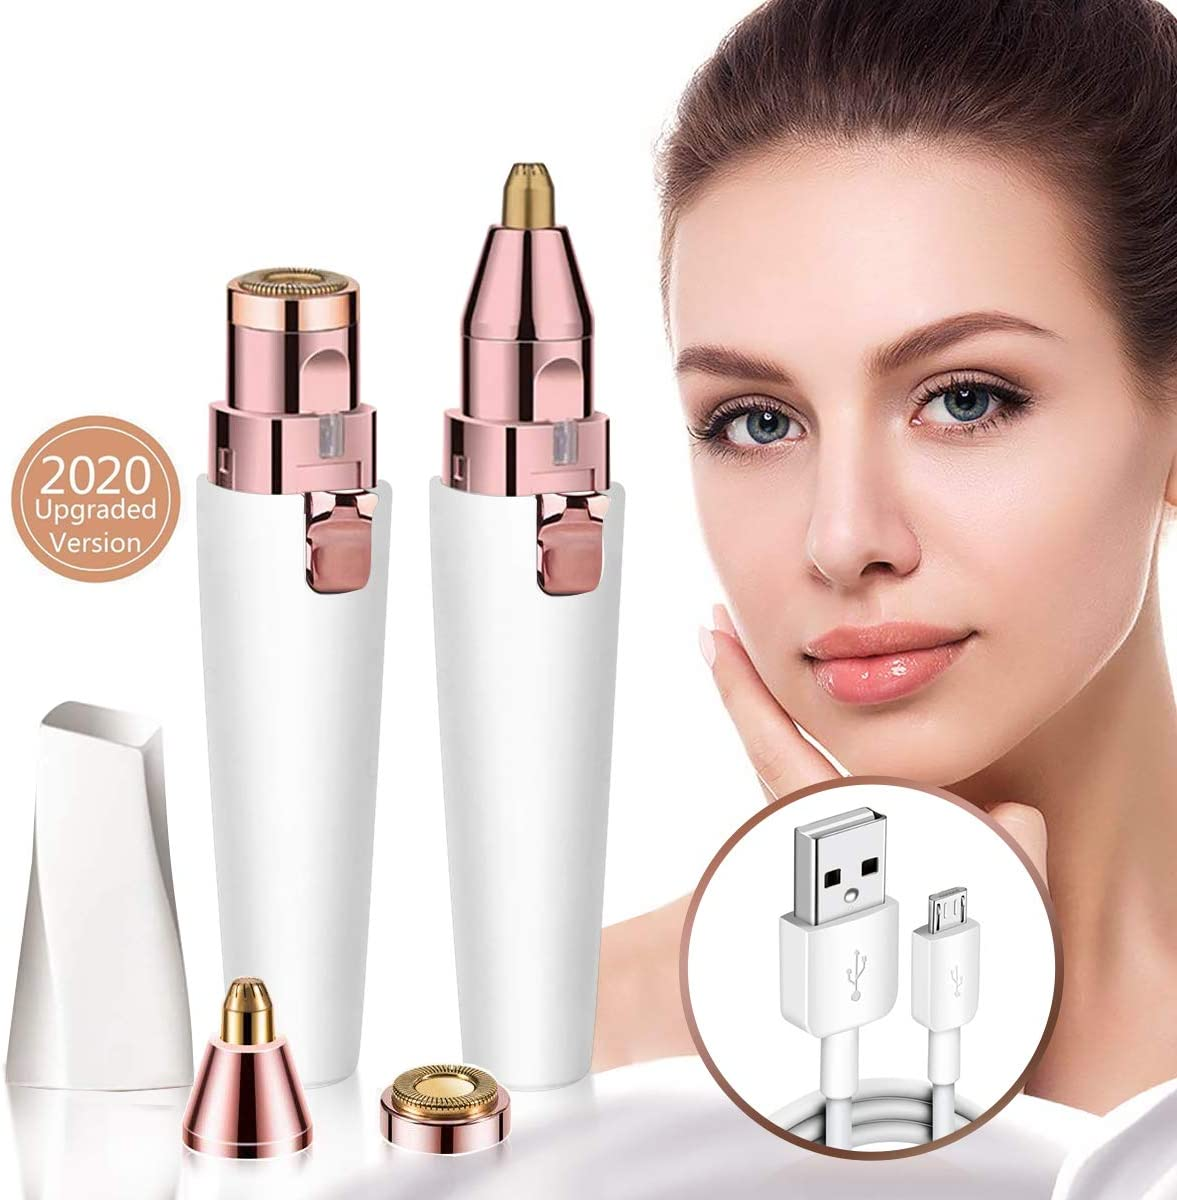 Rechargeable Eyebrow Trimmer & Facial Hair Remover for Women, 2 in 1 Eyebrow Razor and Painless Hair Remover, Electric Eyebrow Shaver with Light